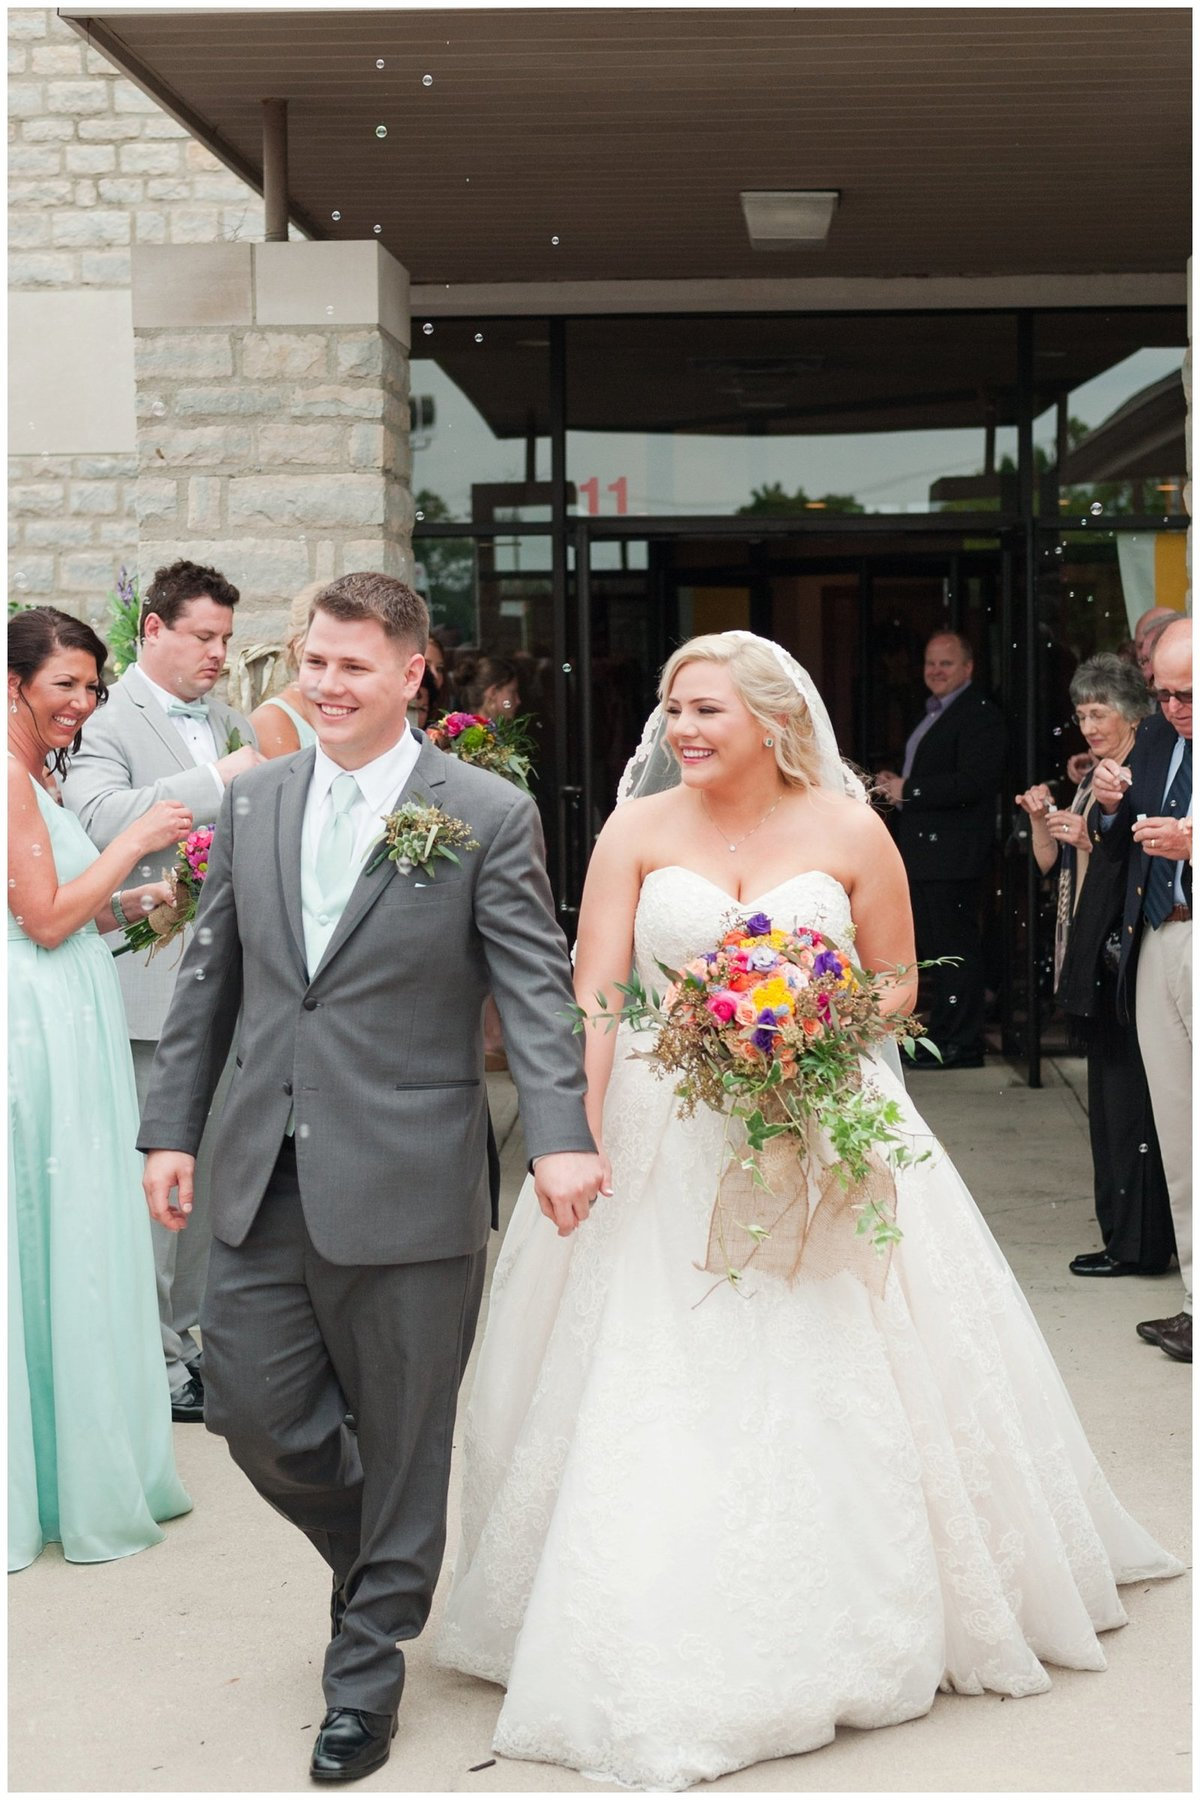 Heritage golf and country club wedding hilliard ohio wedding photos_0033